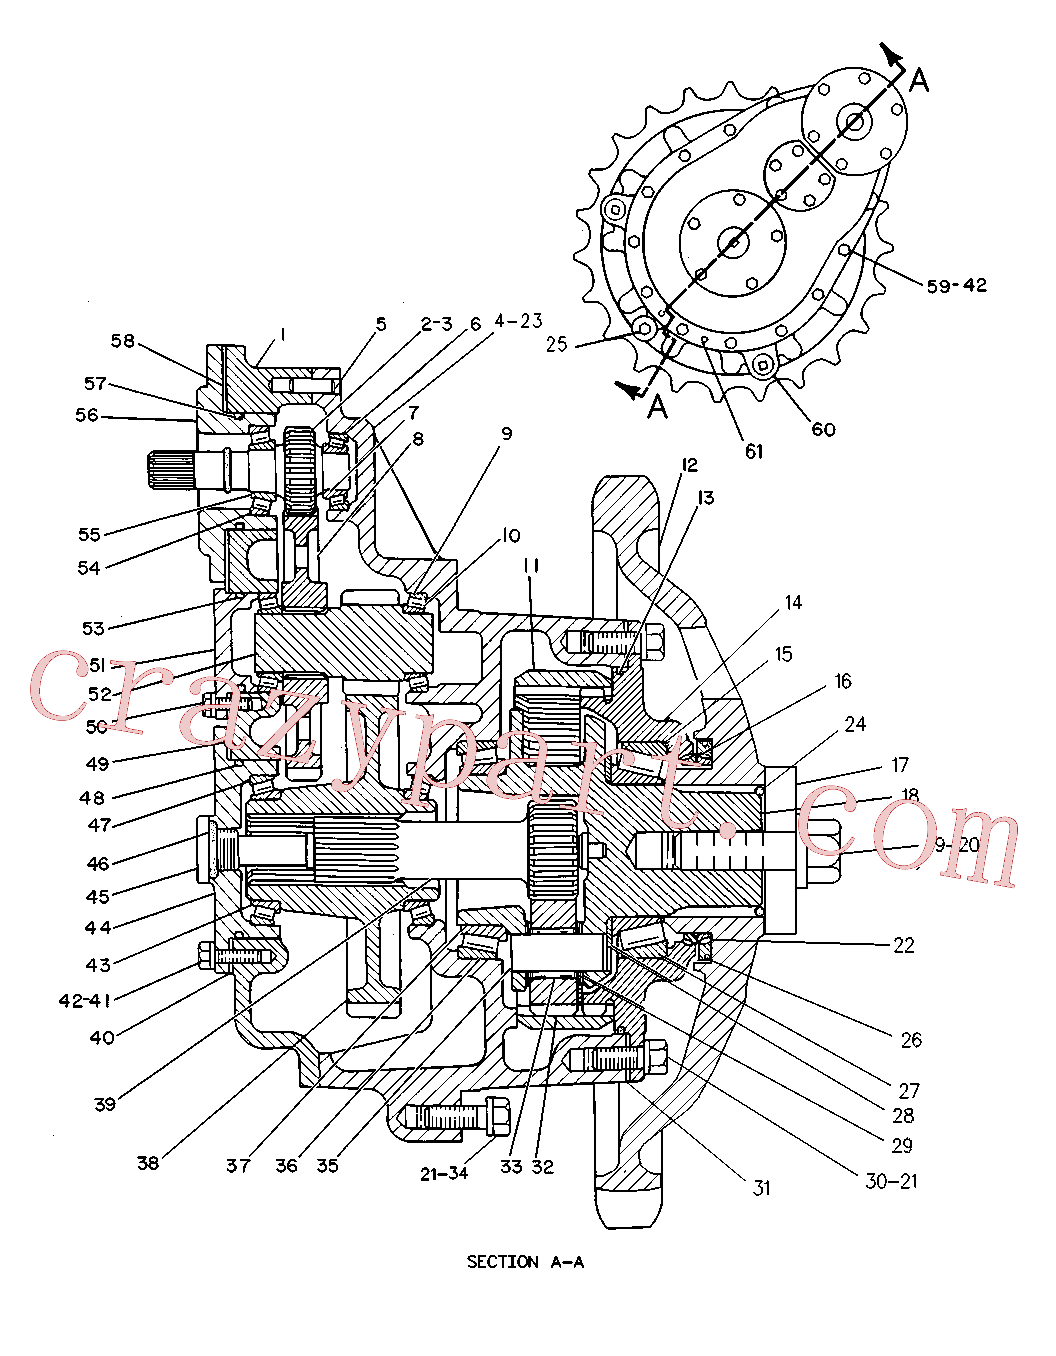 CAT 5C-0862 for 215C Excavator(EXC) power train 8V-5917 Assembly